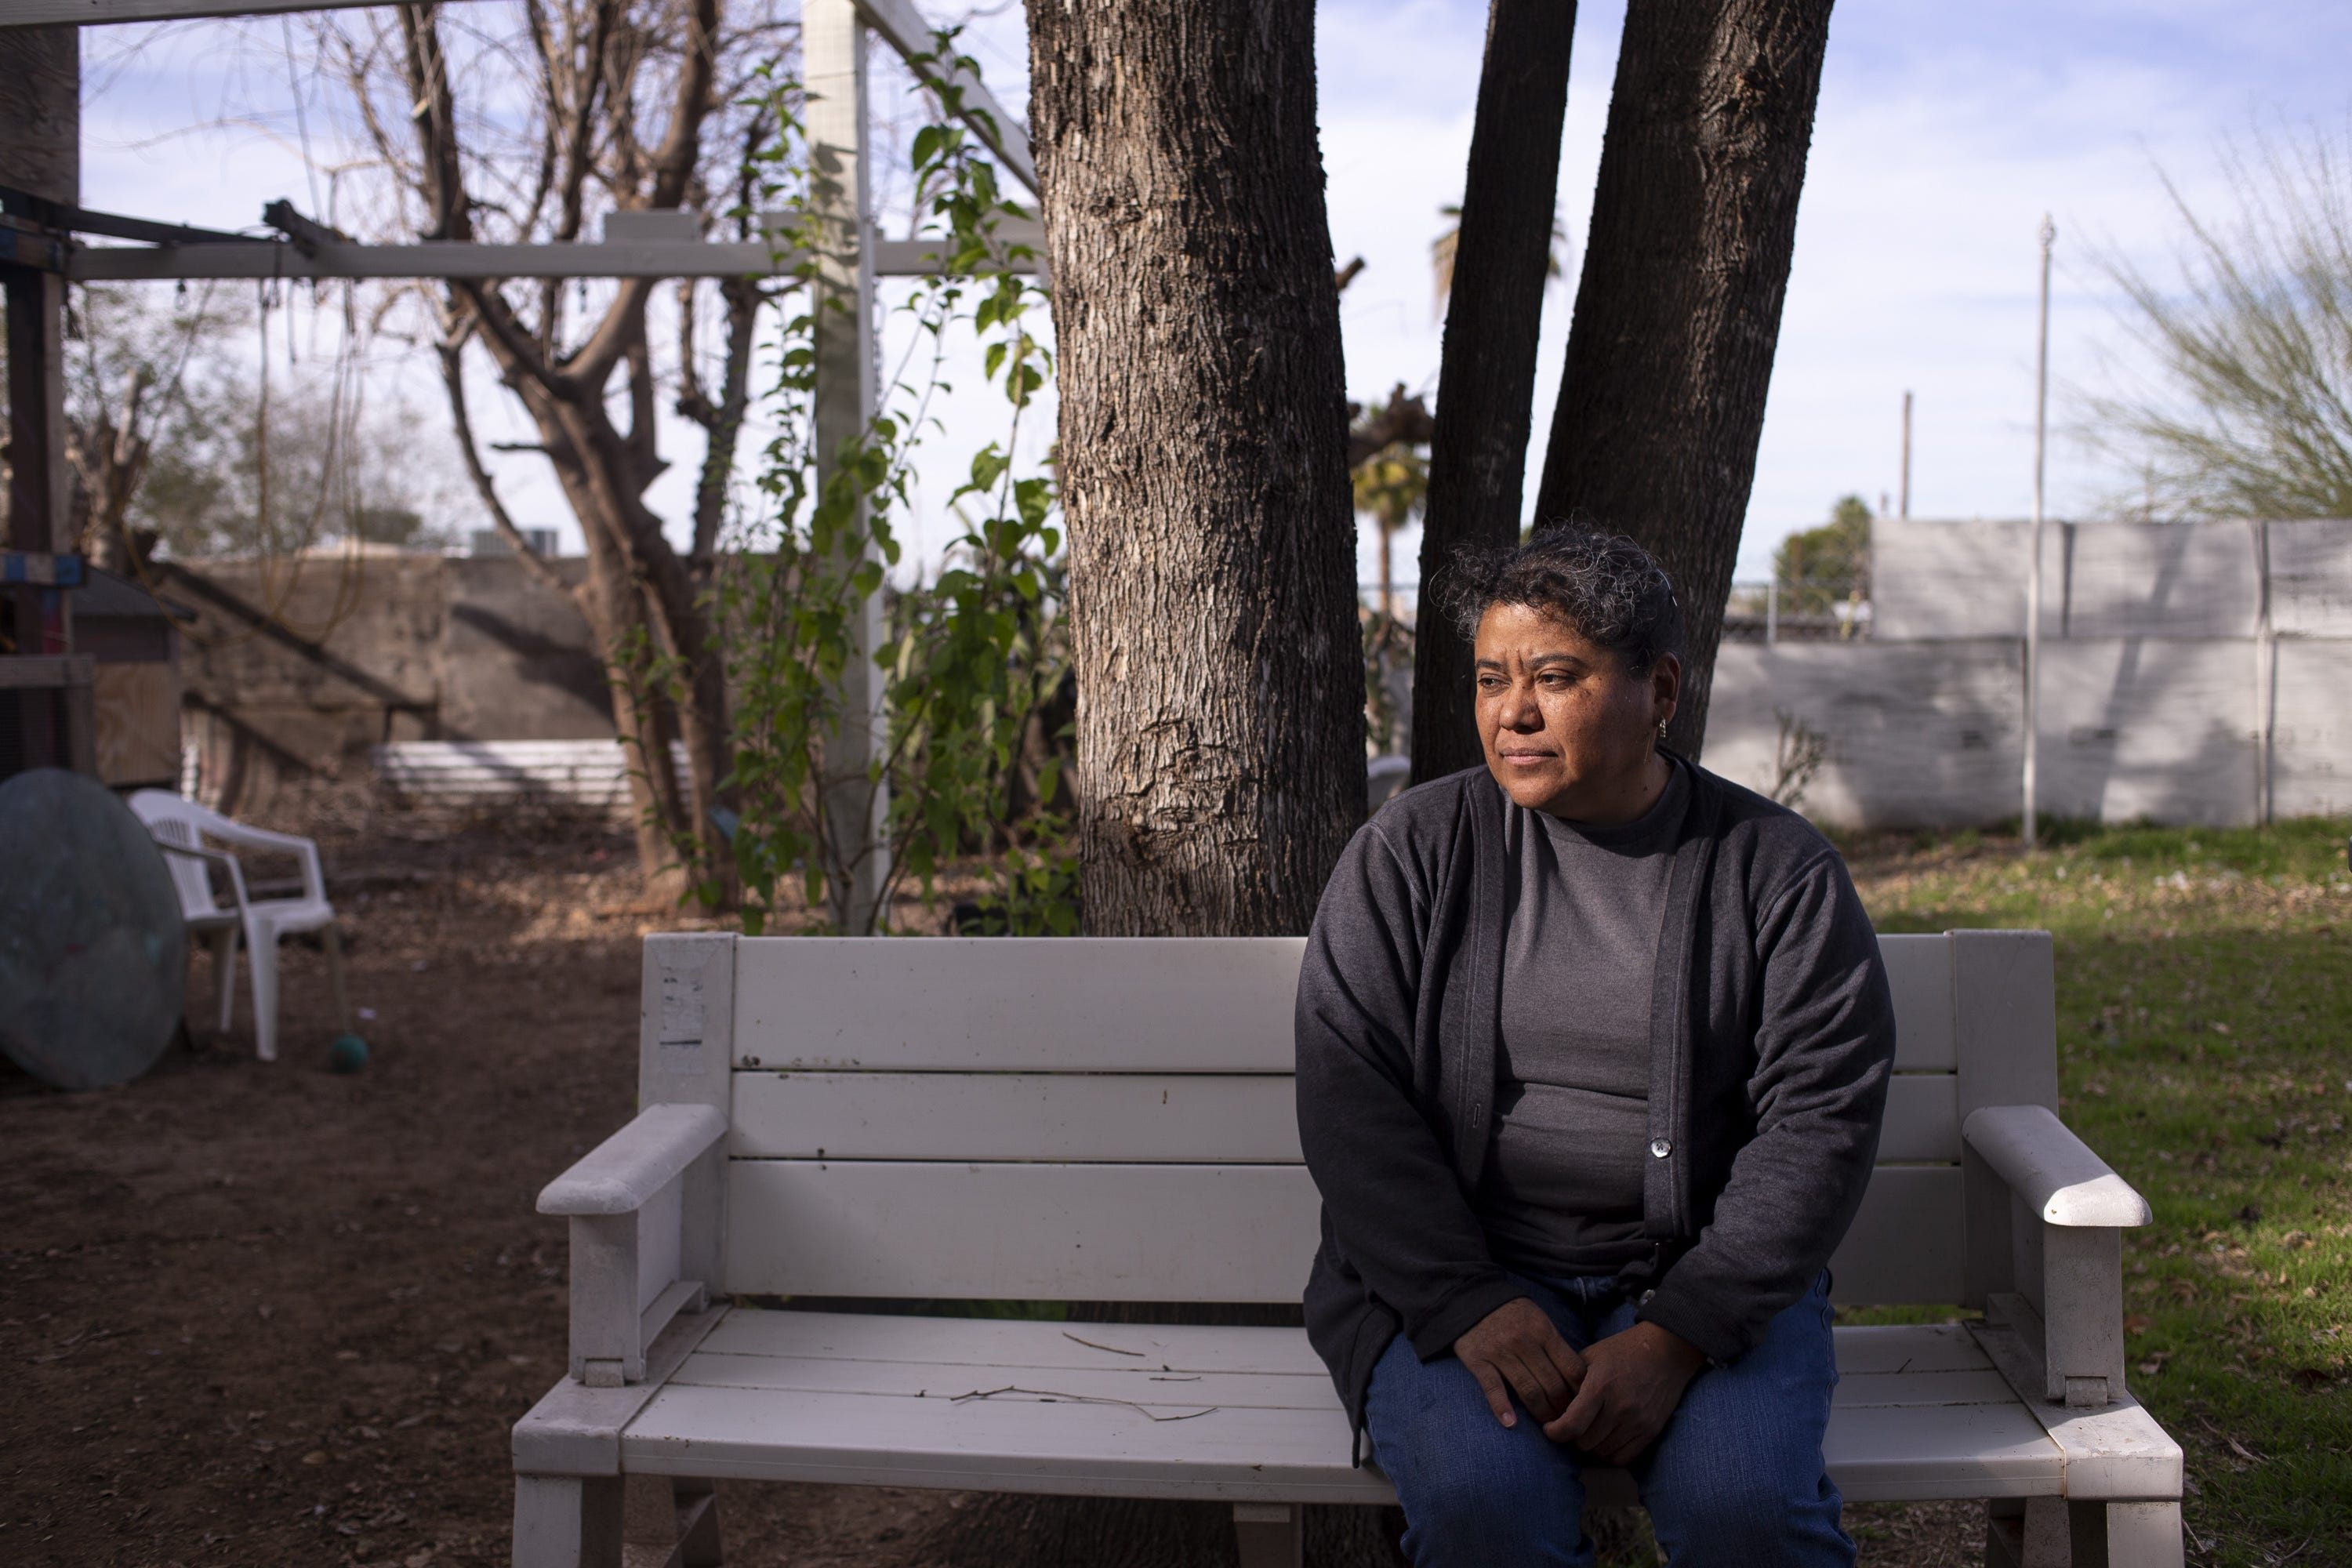 Blanca Abarca poses for a portrait in her backyard on Feb. 27, 2020, in Phoenix.